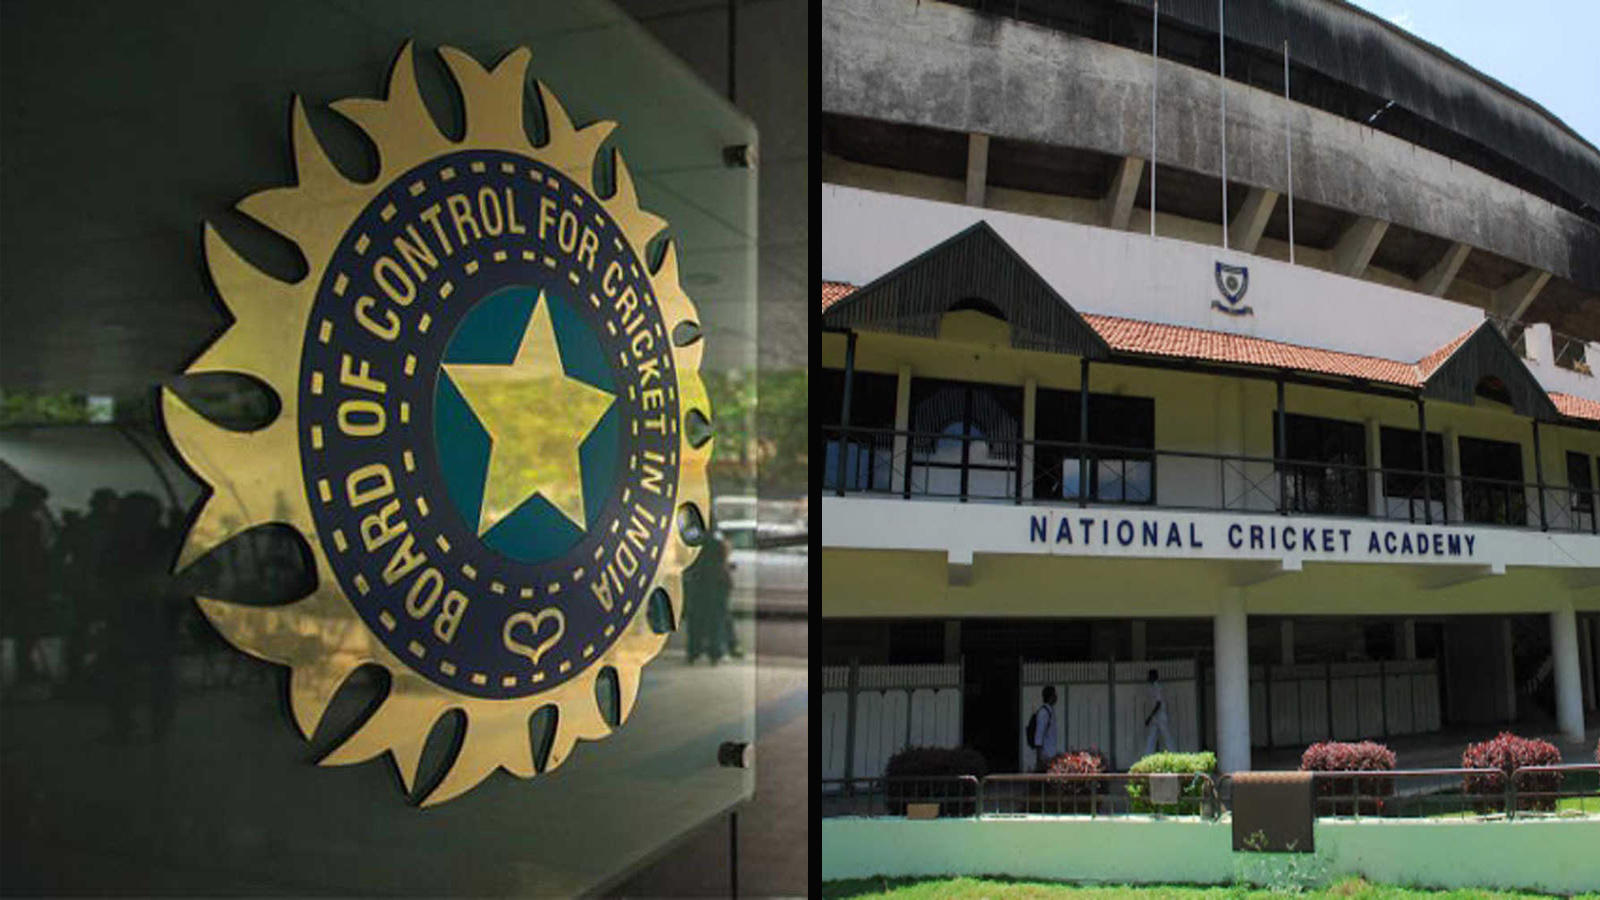 bcci-and-national-cricket-academy-on-the-same-page-reports-suggest-otherwise